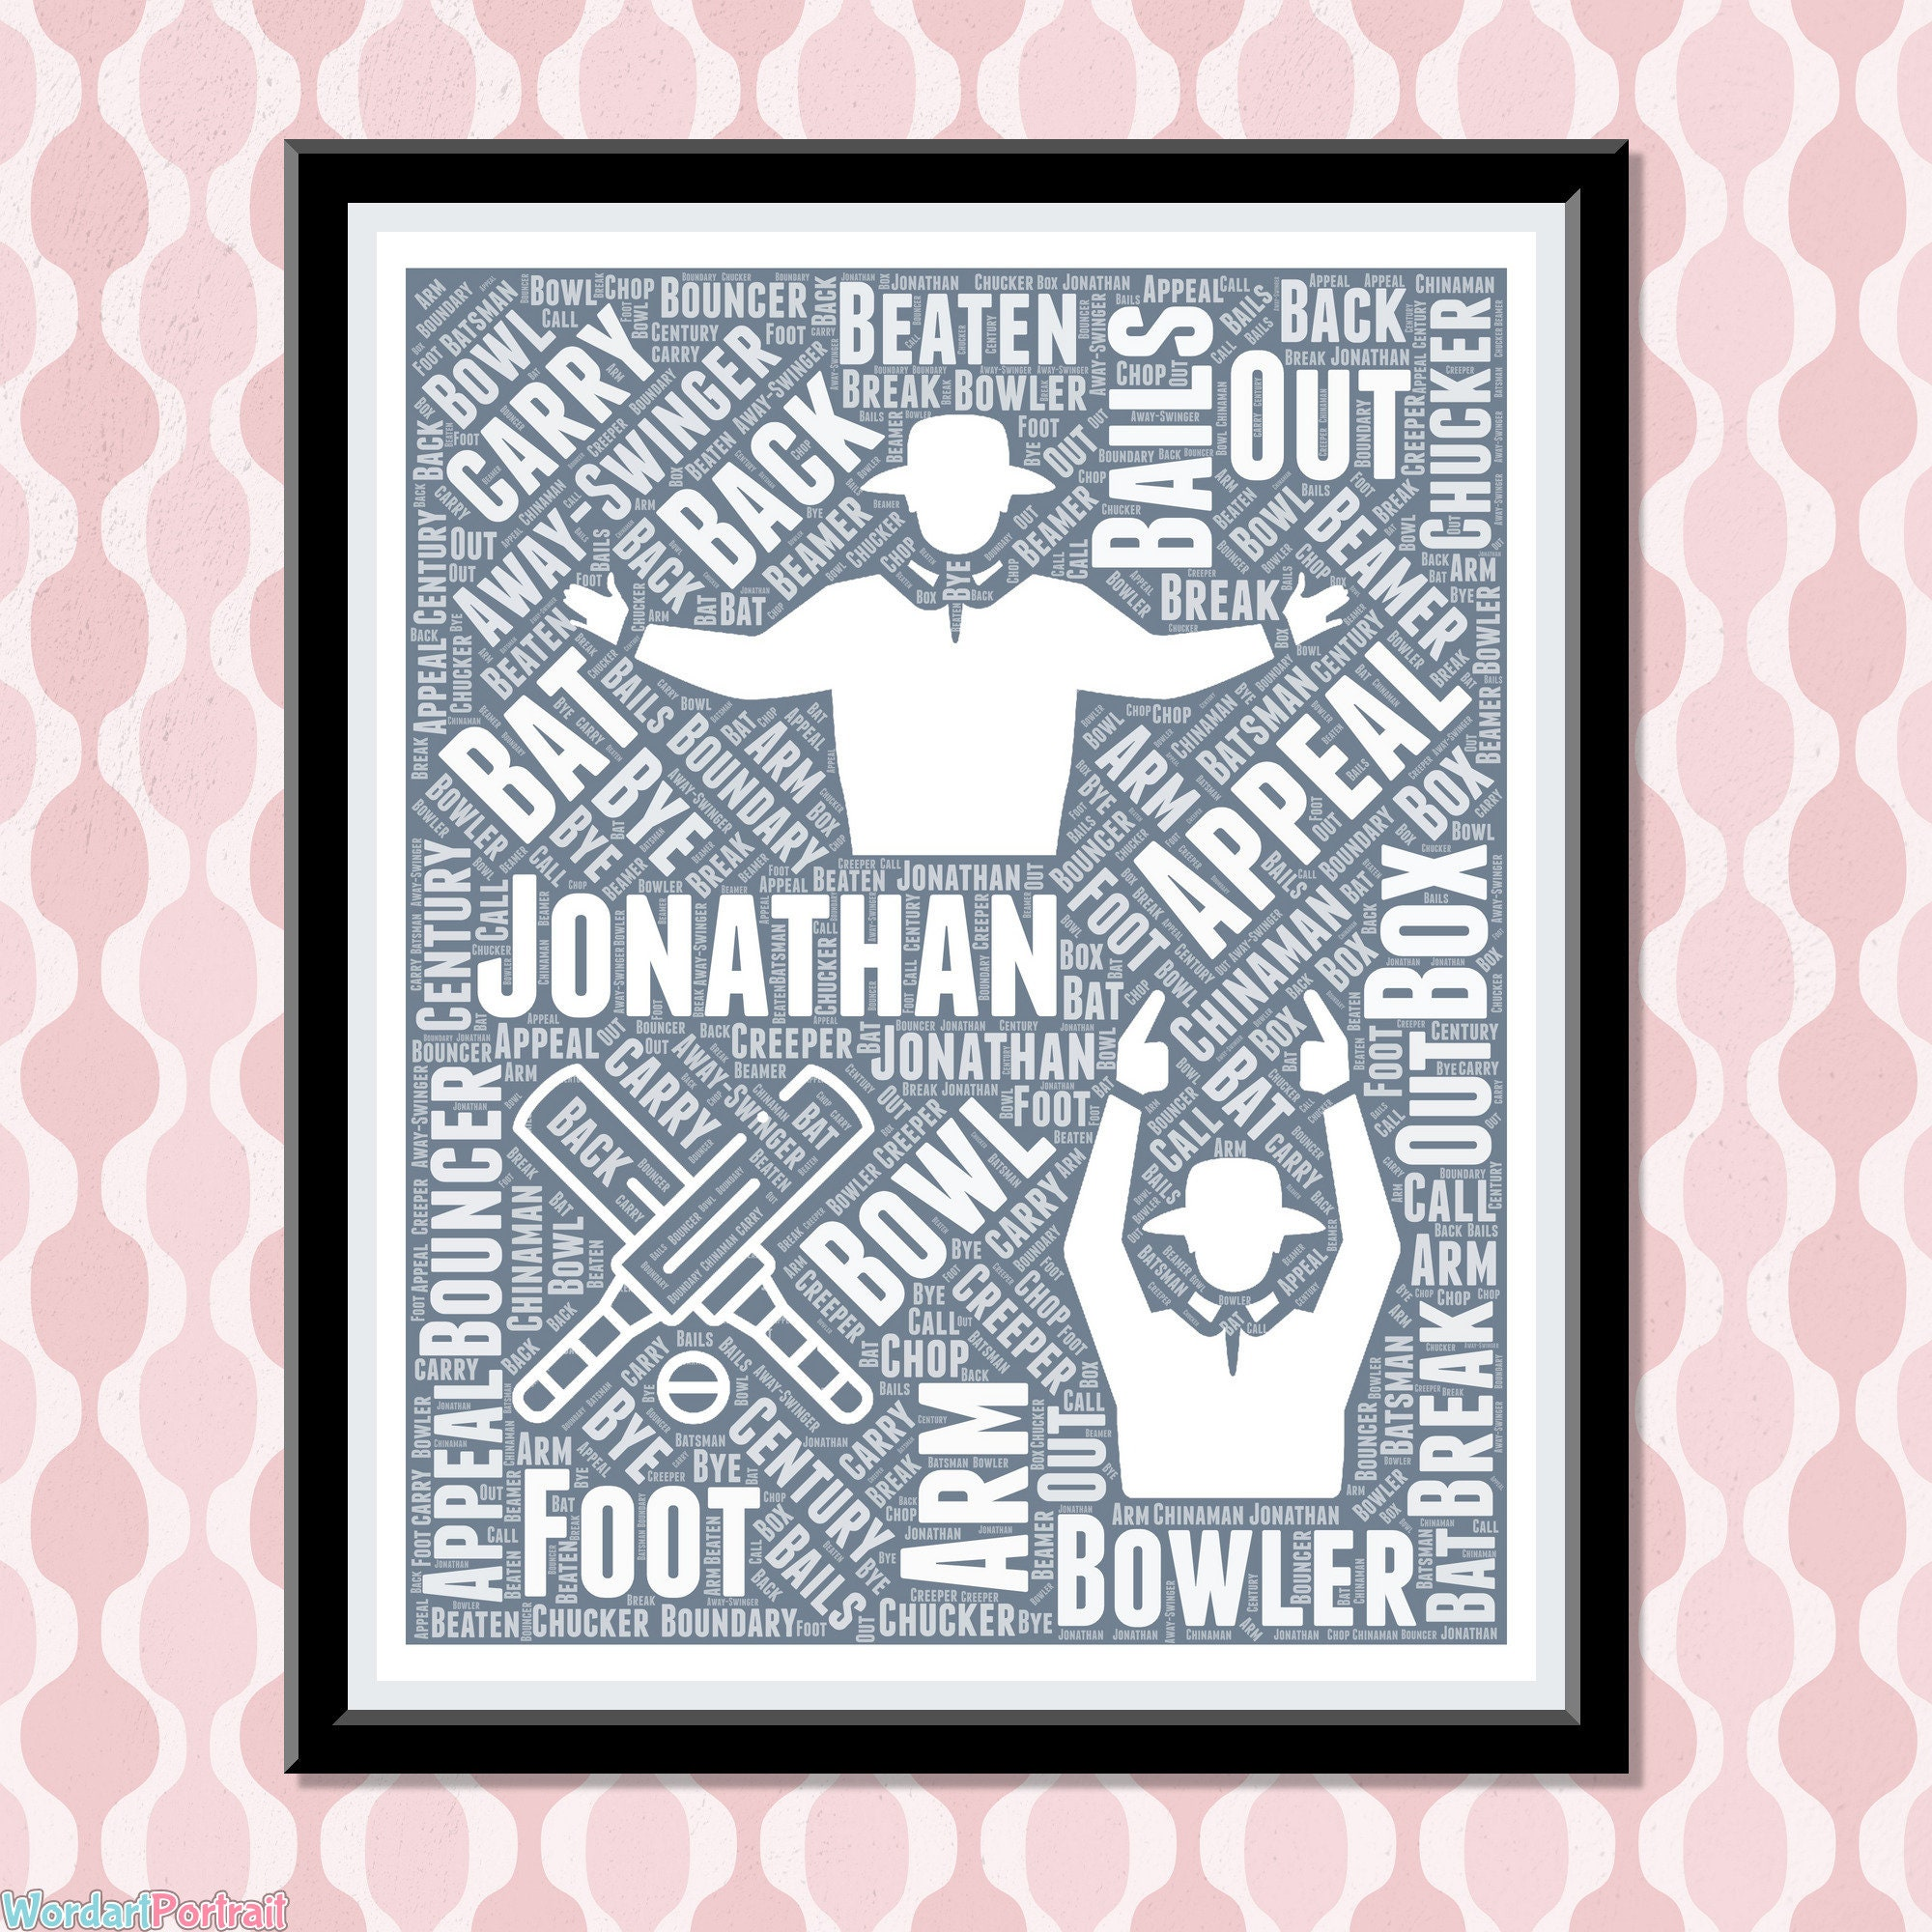 Personalised Cricket Umpire Word Art Gift - Umpiring Wall Print For Cricket - Club Player Cricket - Retirement Birthday Dad Brother Husband Gift